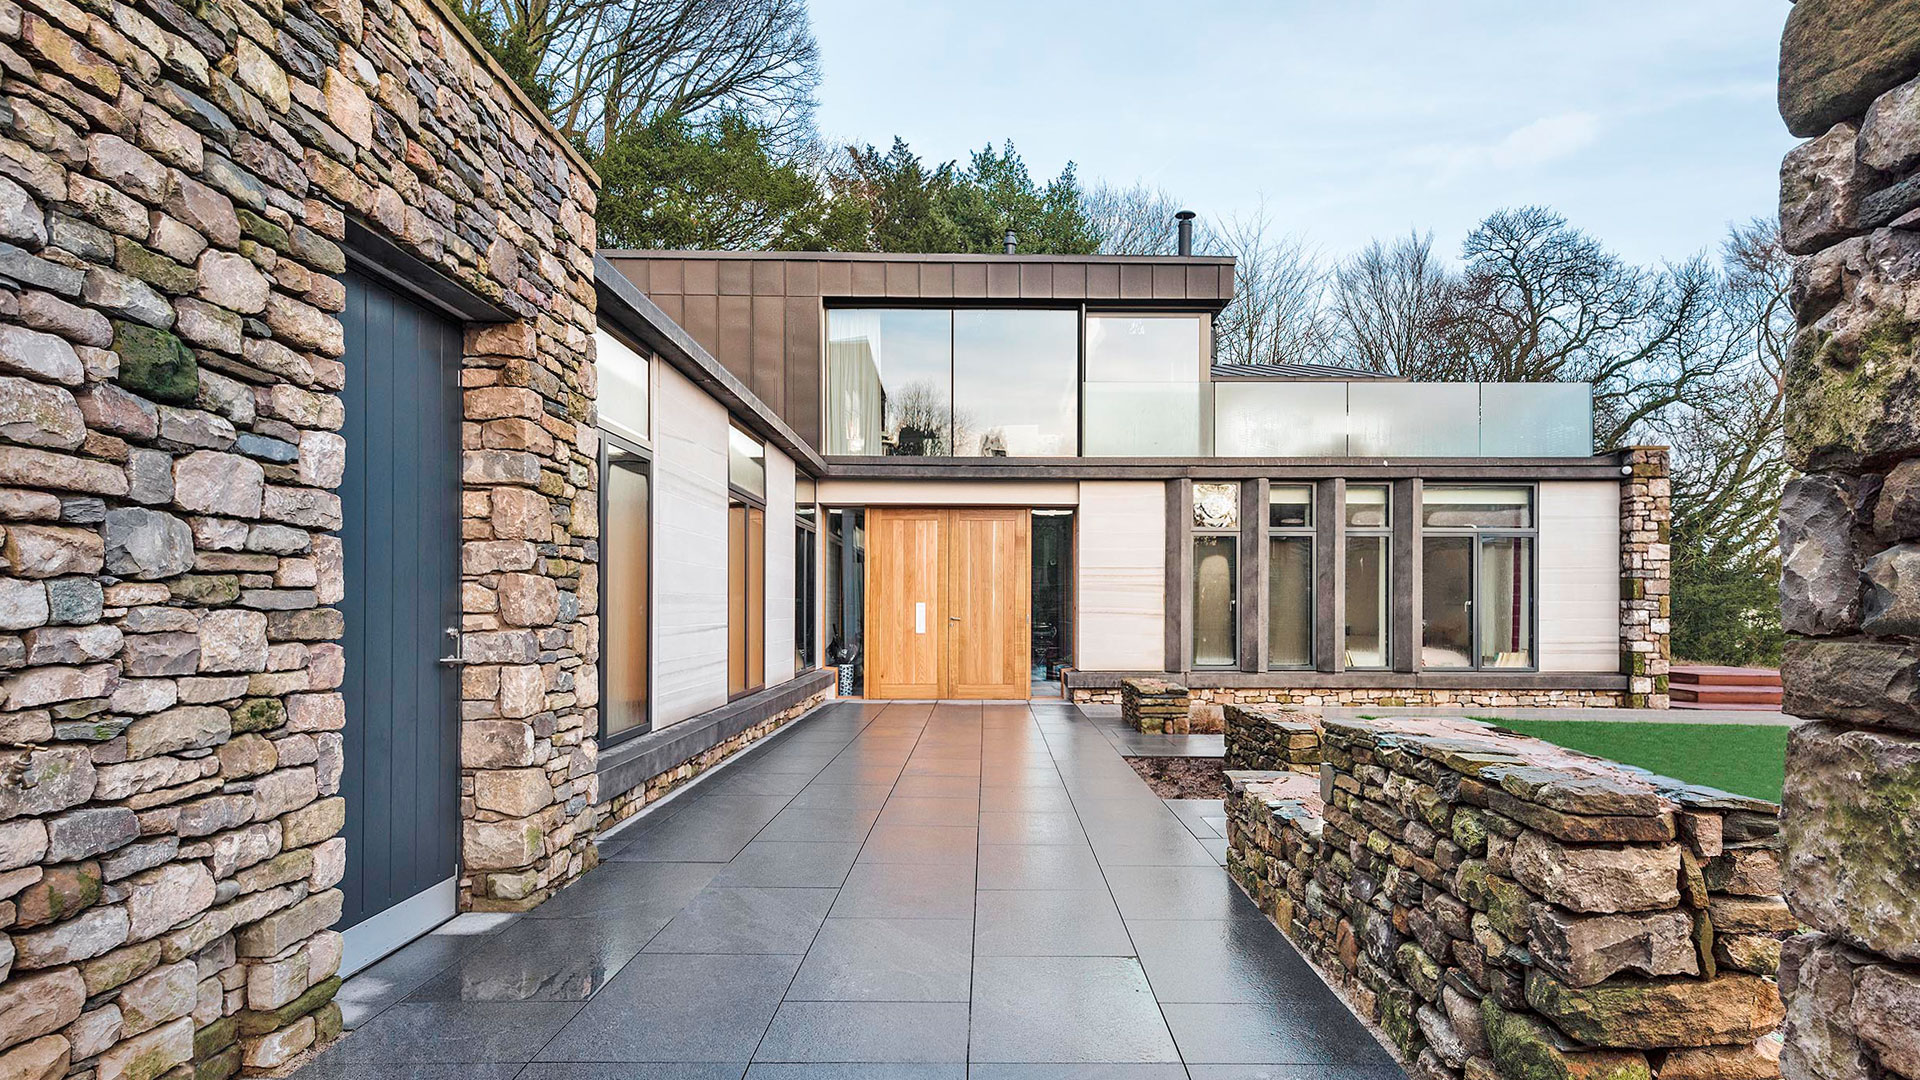 Grand designs house of the year all 4 - House of design ...